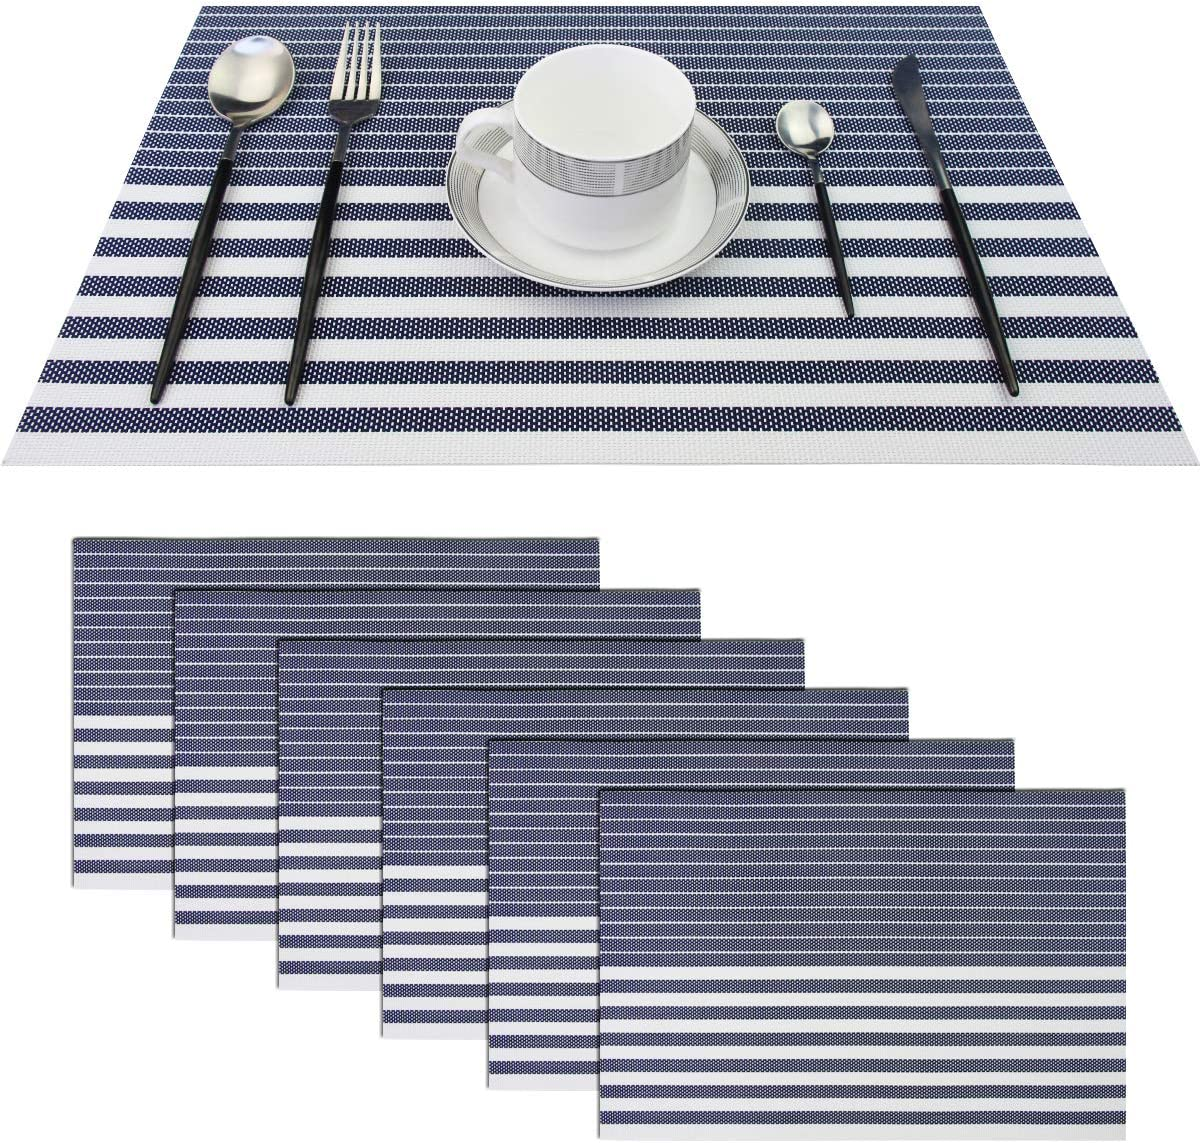 pigchcy Navy Blue Placemats Set of 6 Vinyl Woven Heat-Resistant Placemat Washable Easy to Clean Table Mats for Dining Room (18 x 12 inch)